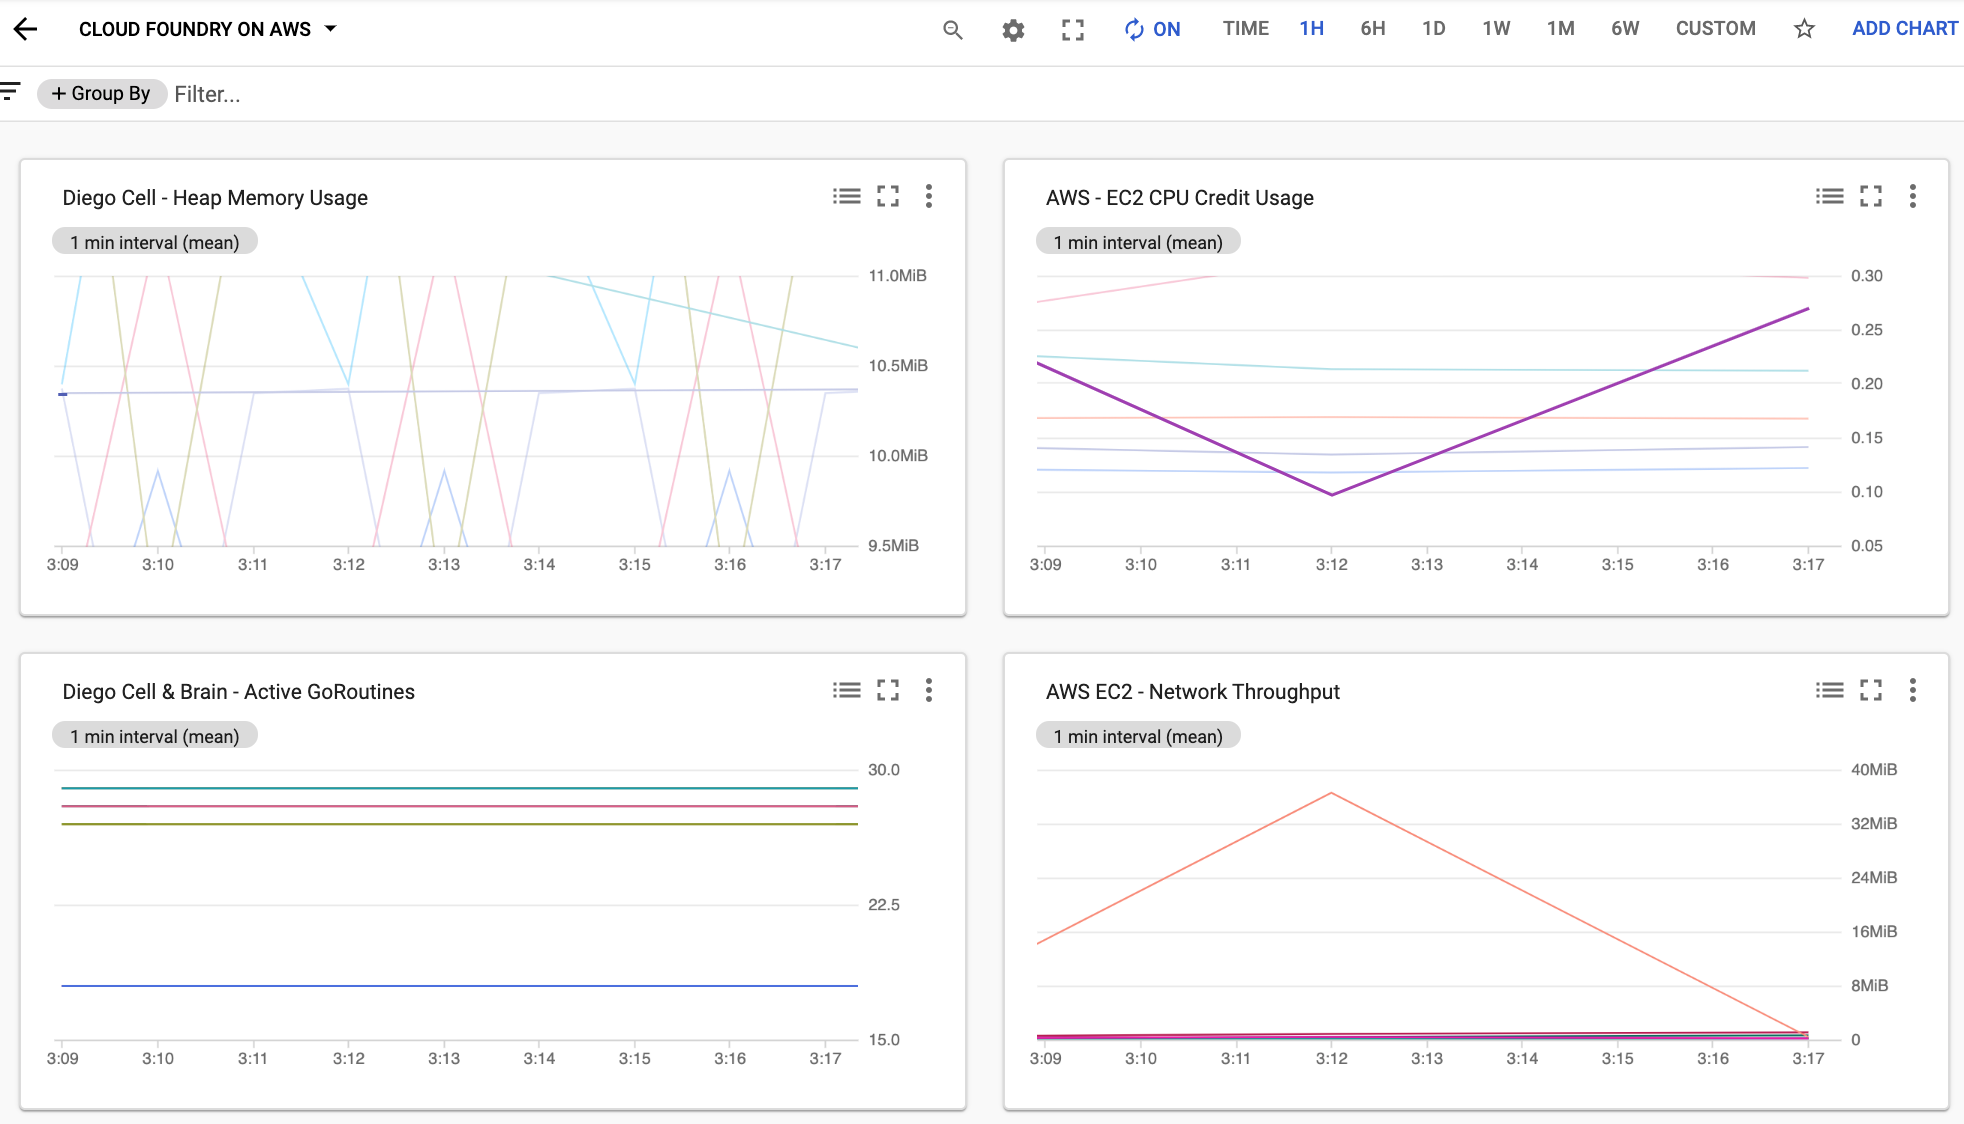 Dashboard of Cloud Foundry Diego Cell performance metrics.